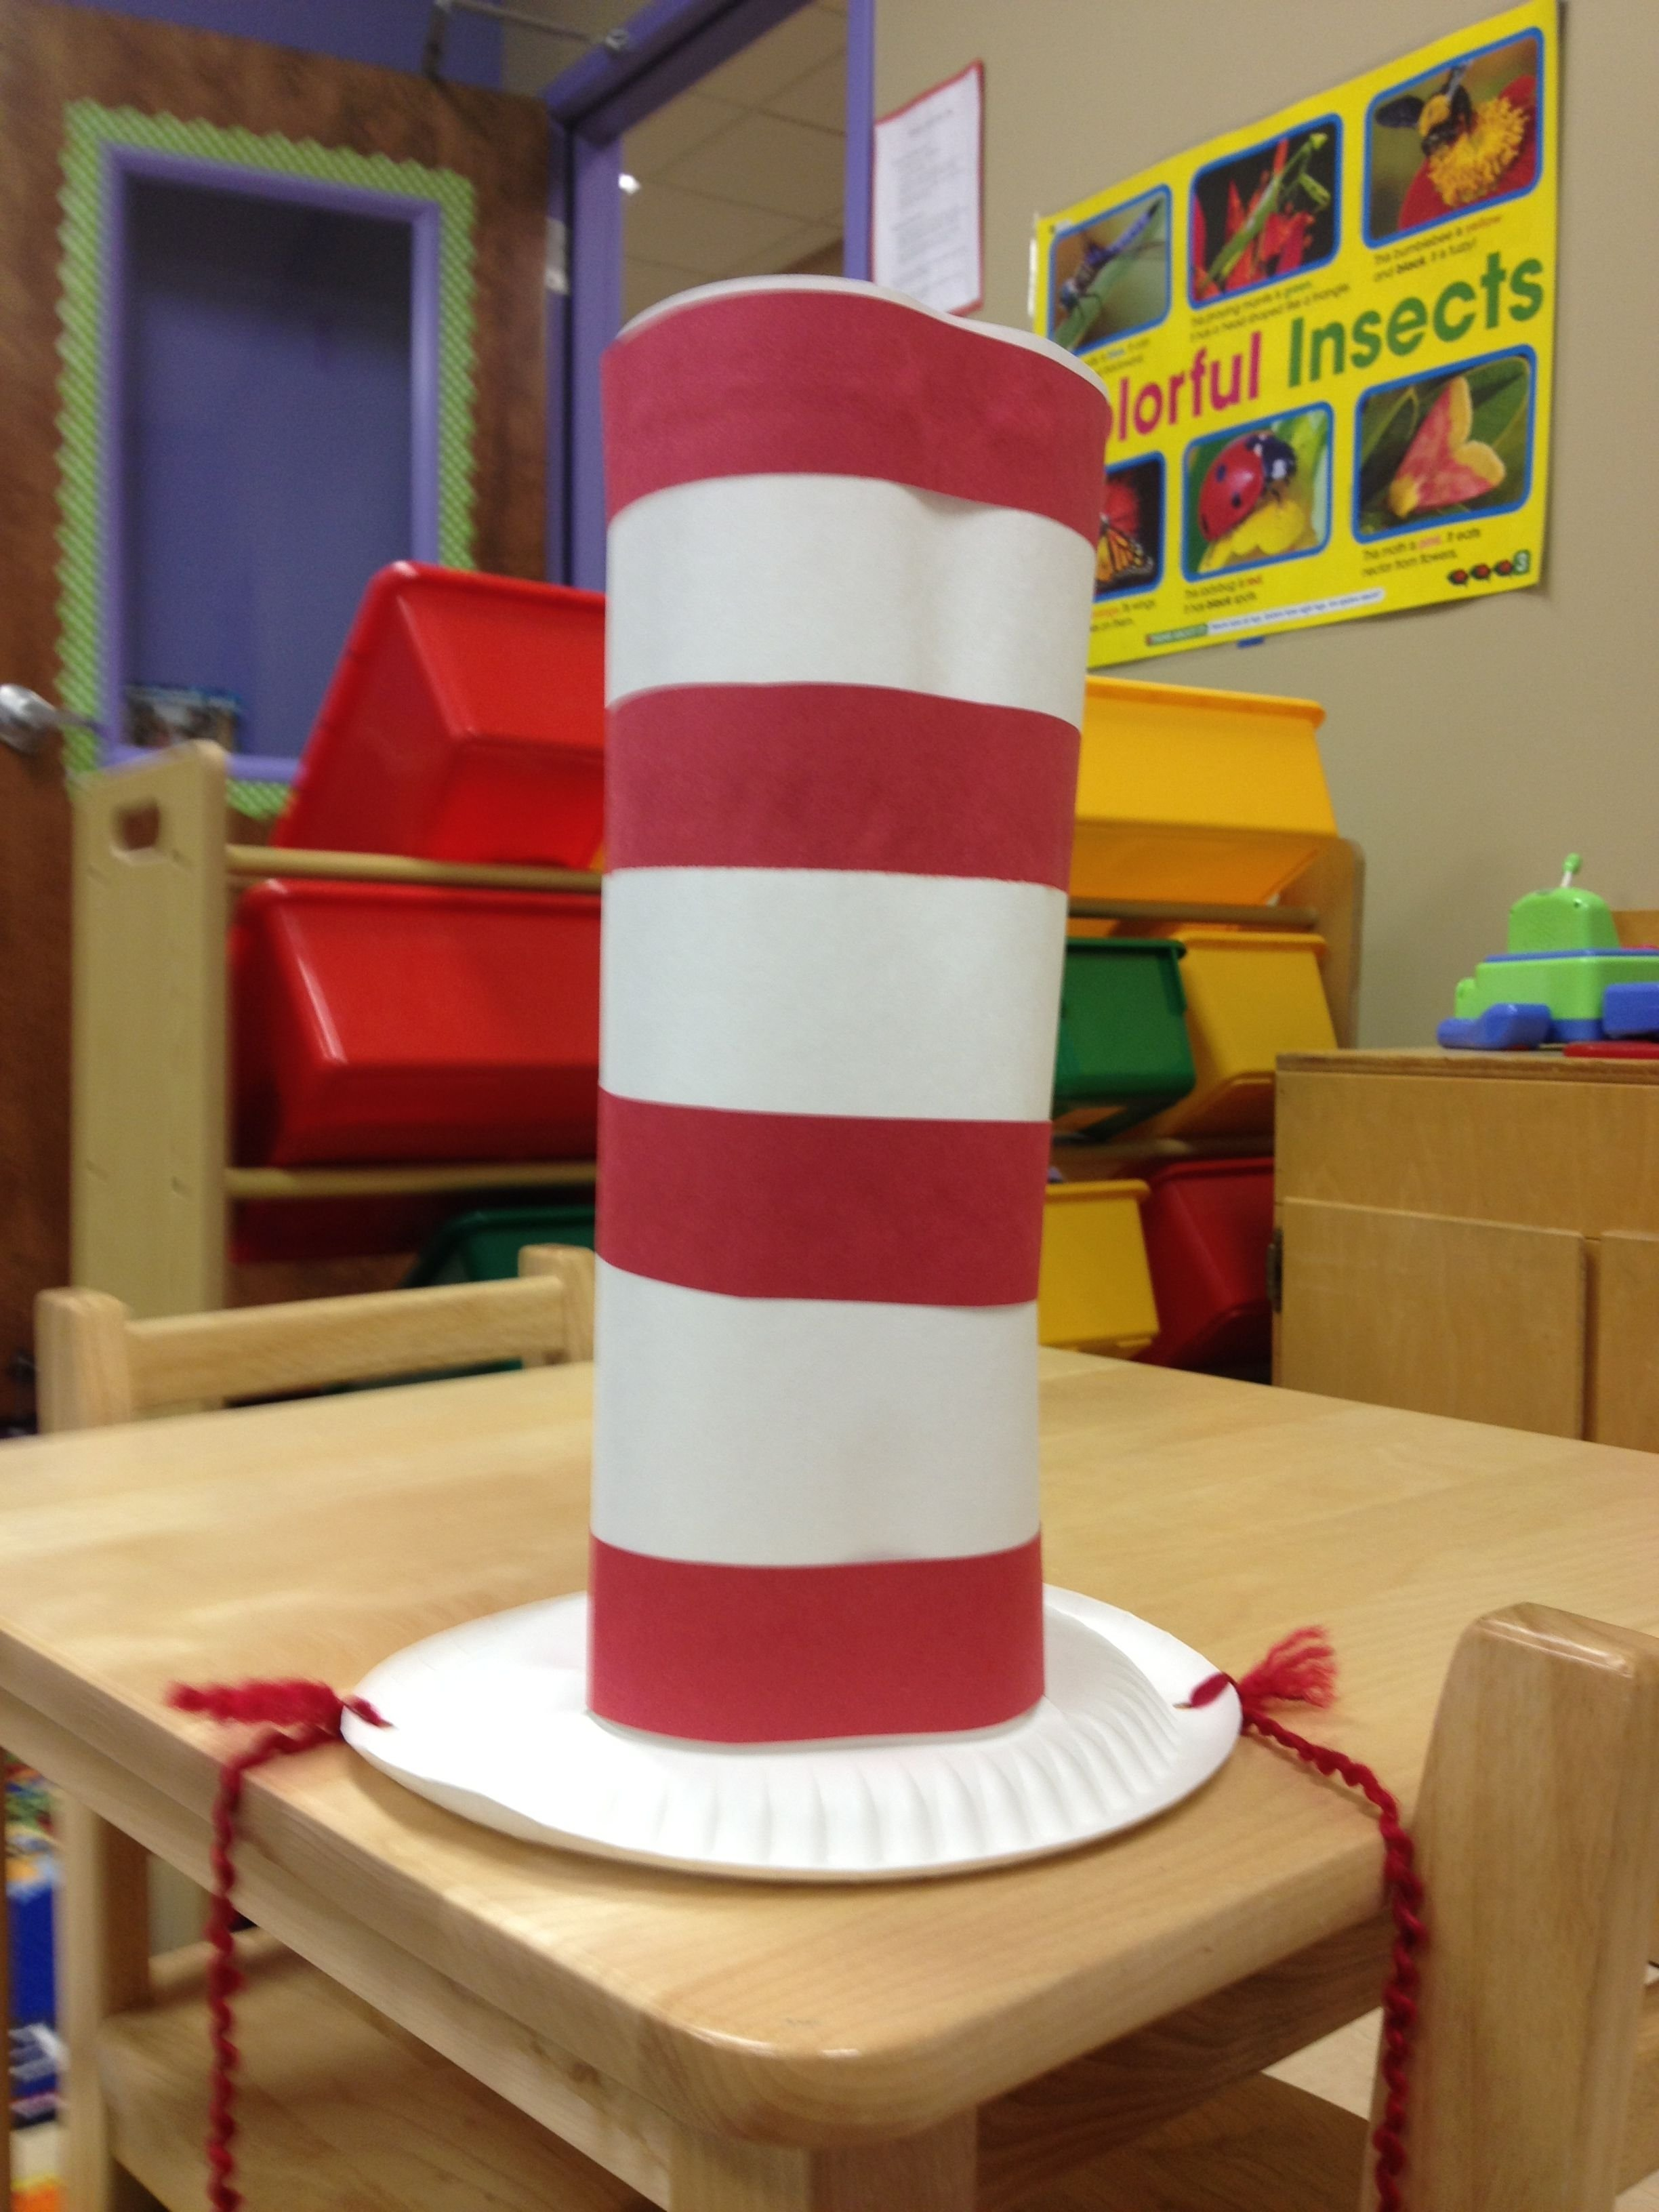 10 Most Popular Cat In The Hat Craft Ideas dr seuss week cat in the hat hat made from paper plate yarn and 2020